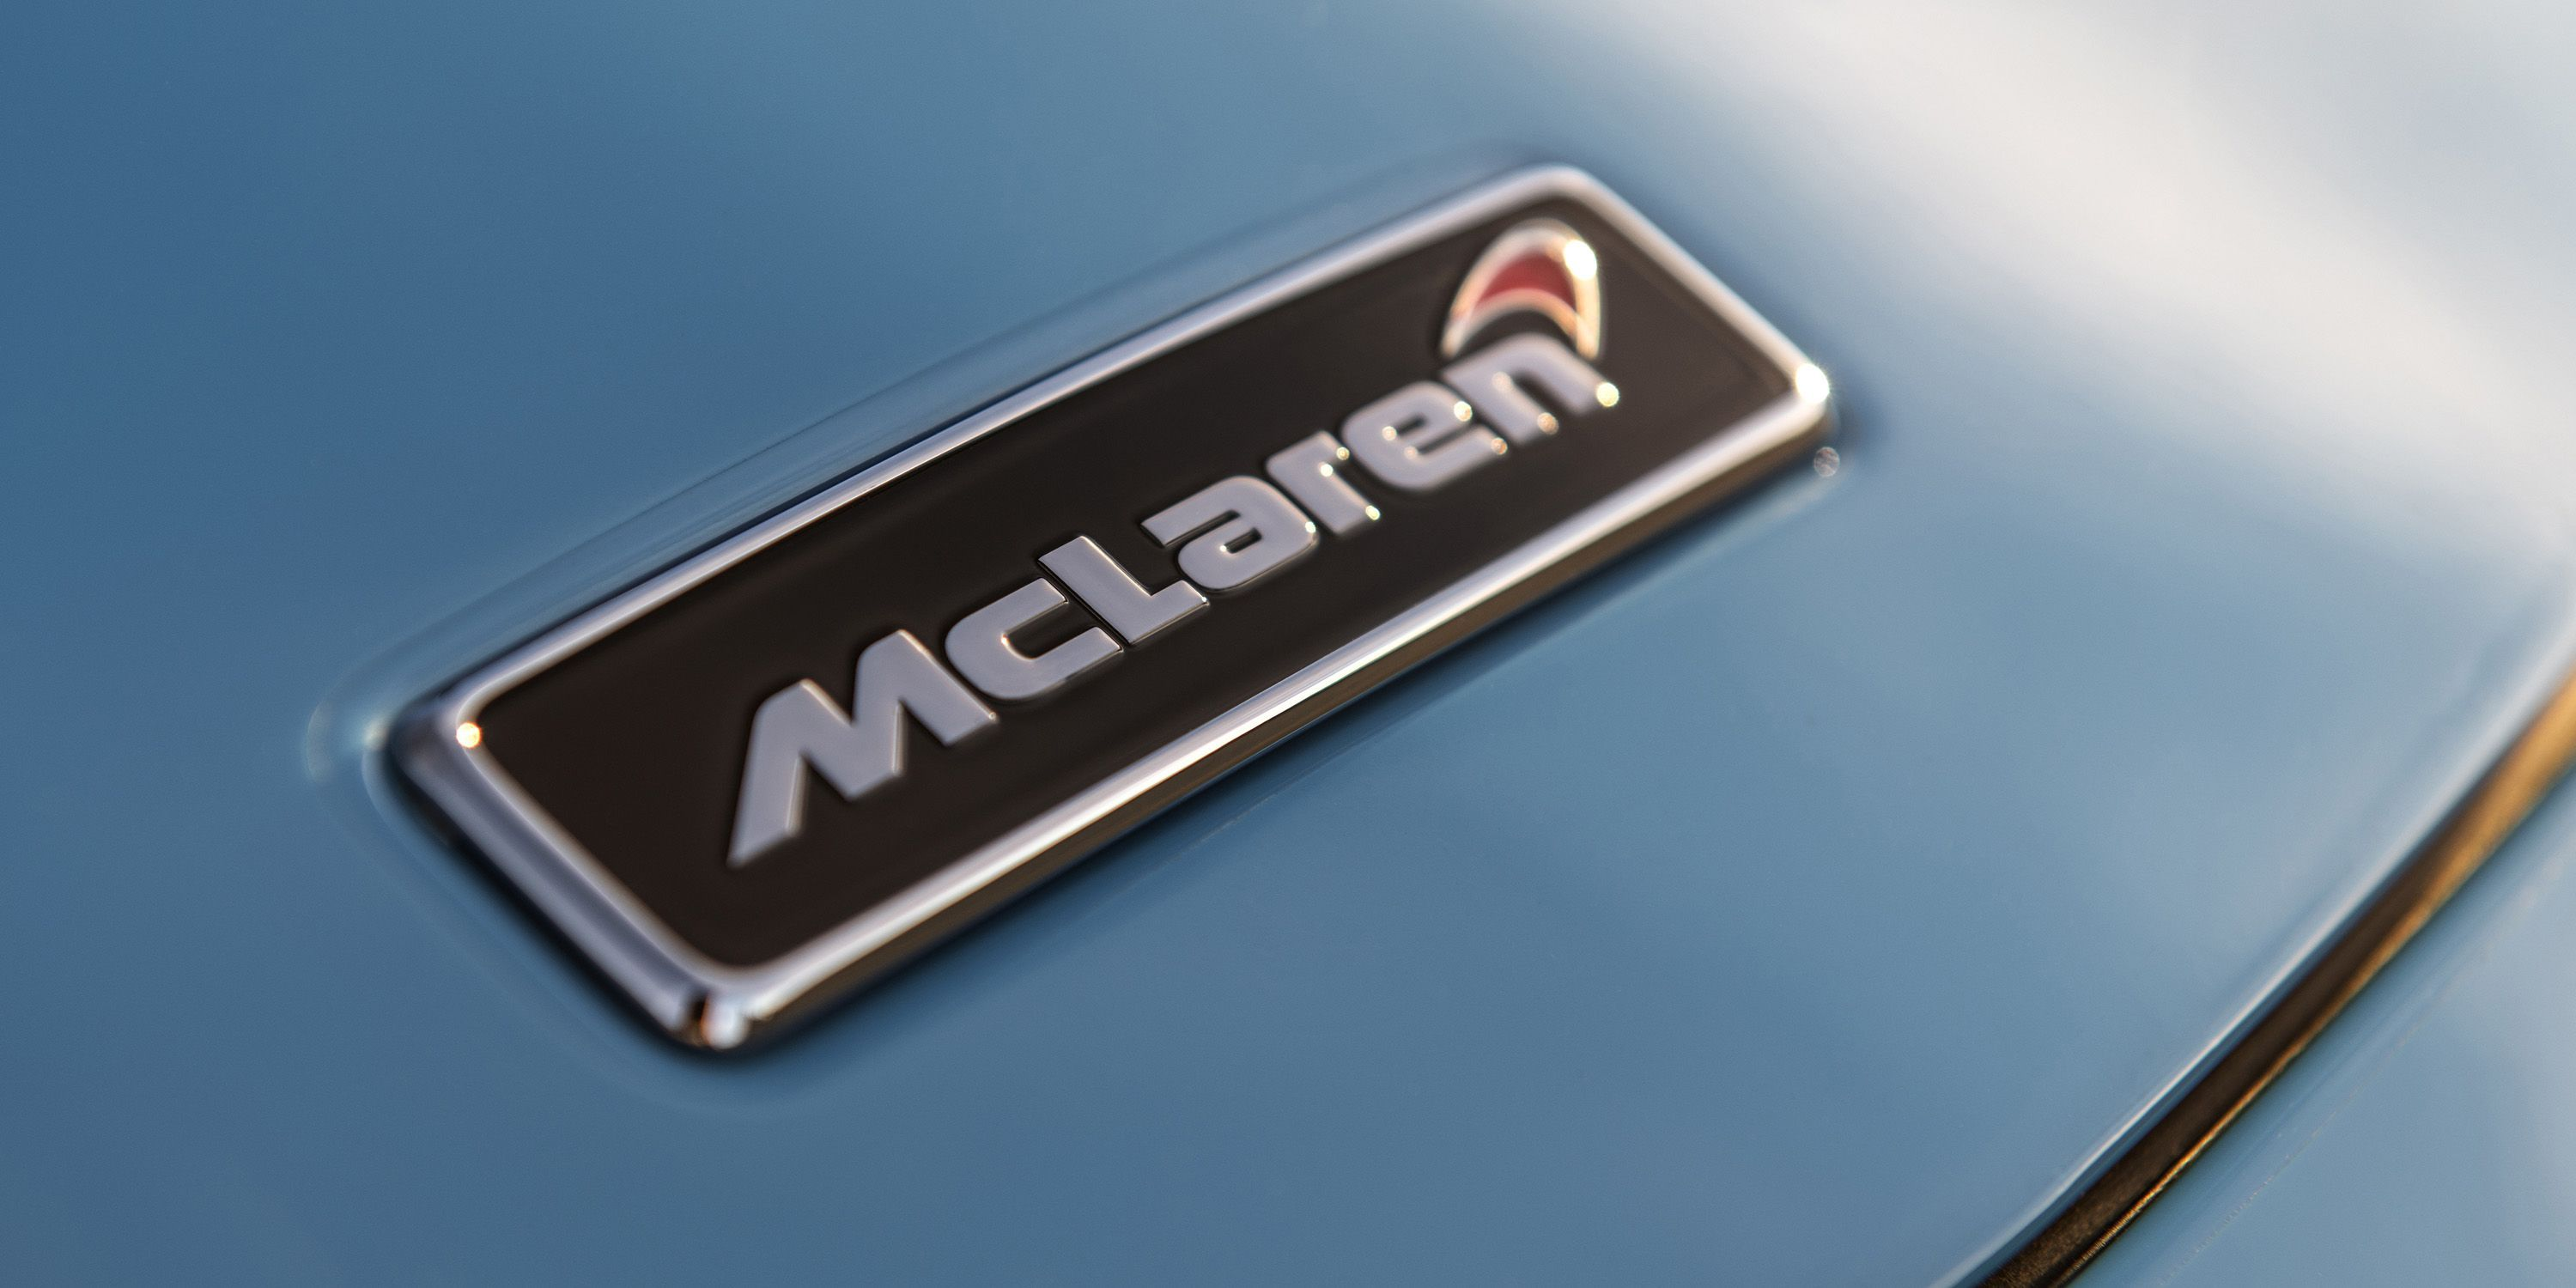 McLaren Logo - McLaren's Logo Probably Comes From Cigarettes and a Flightless Bird